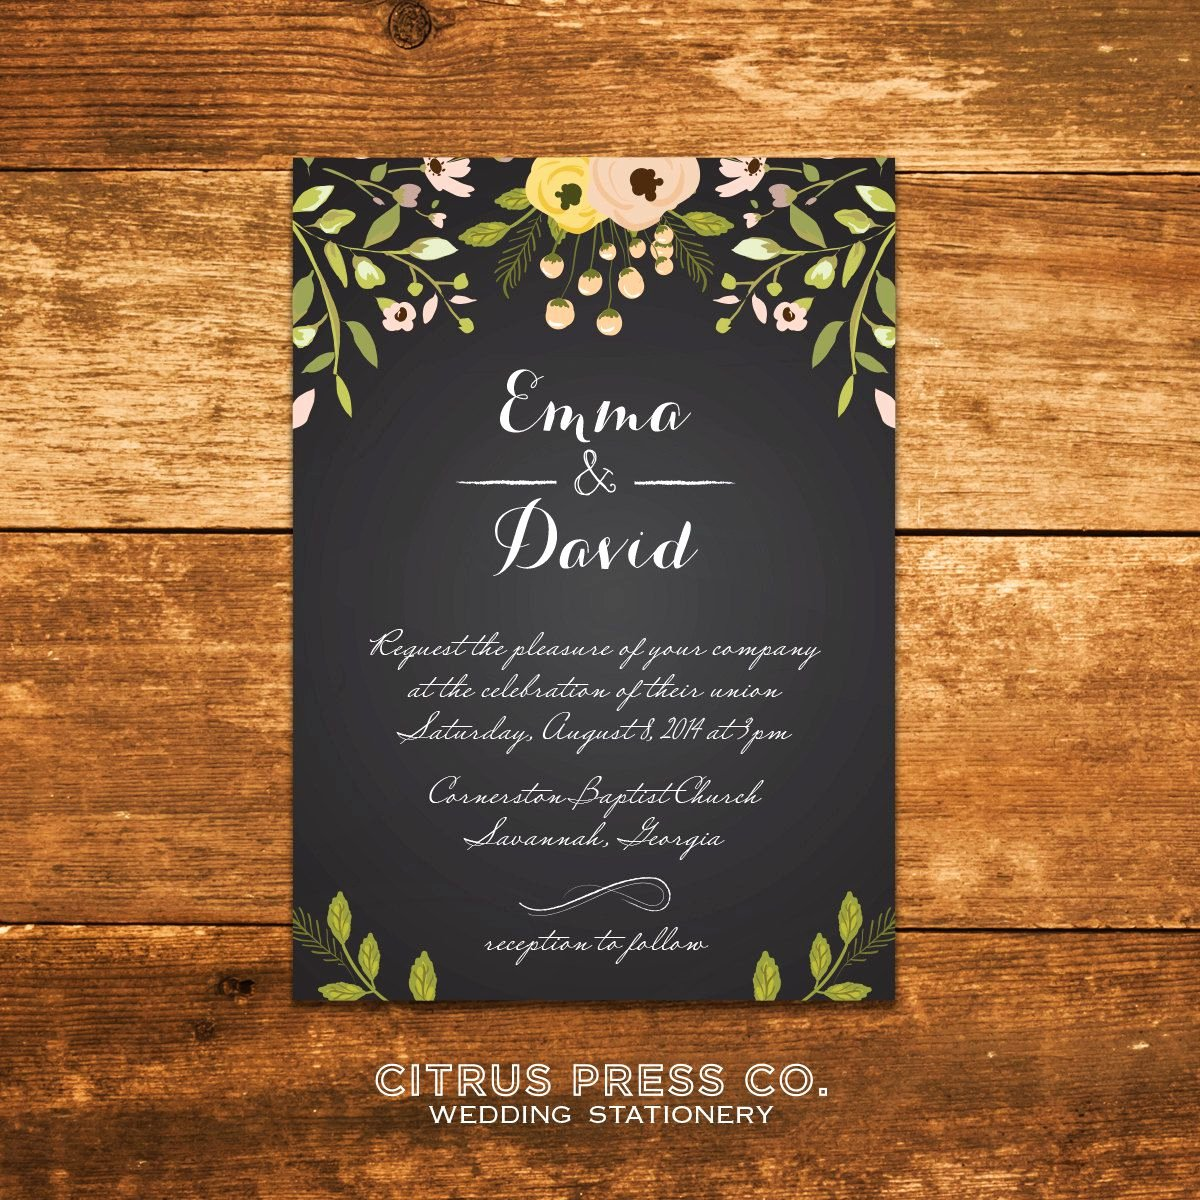 Chalkboard Invitation Template Free Beautiful Chalkboard Invitation Template Chalkboard Wedding